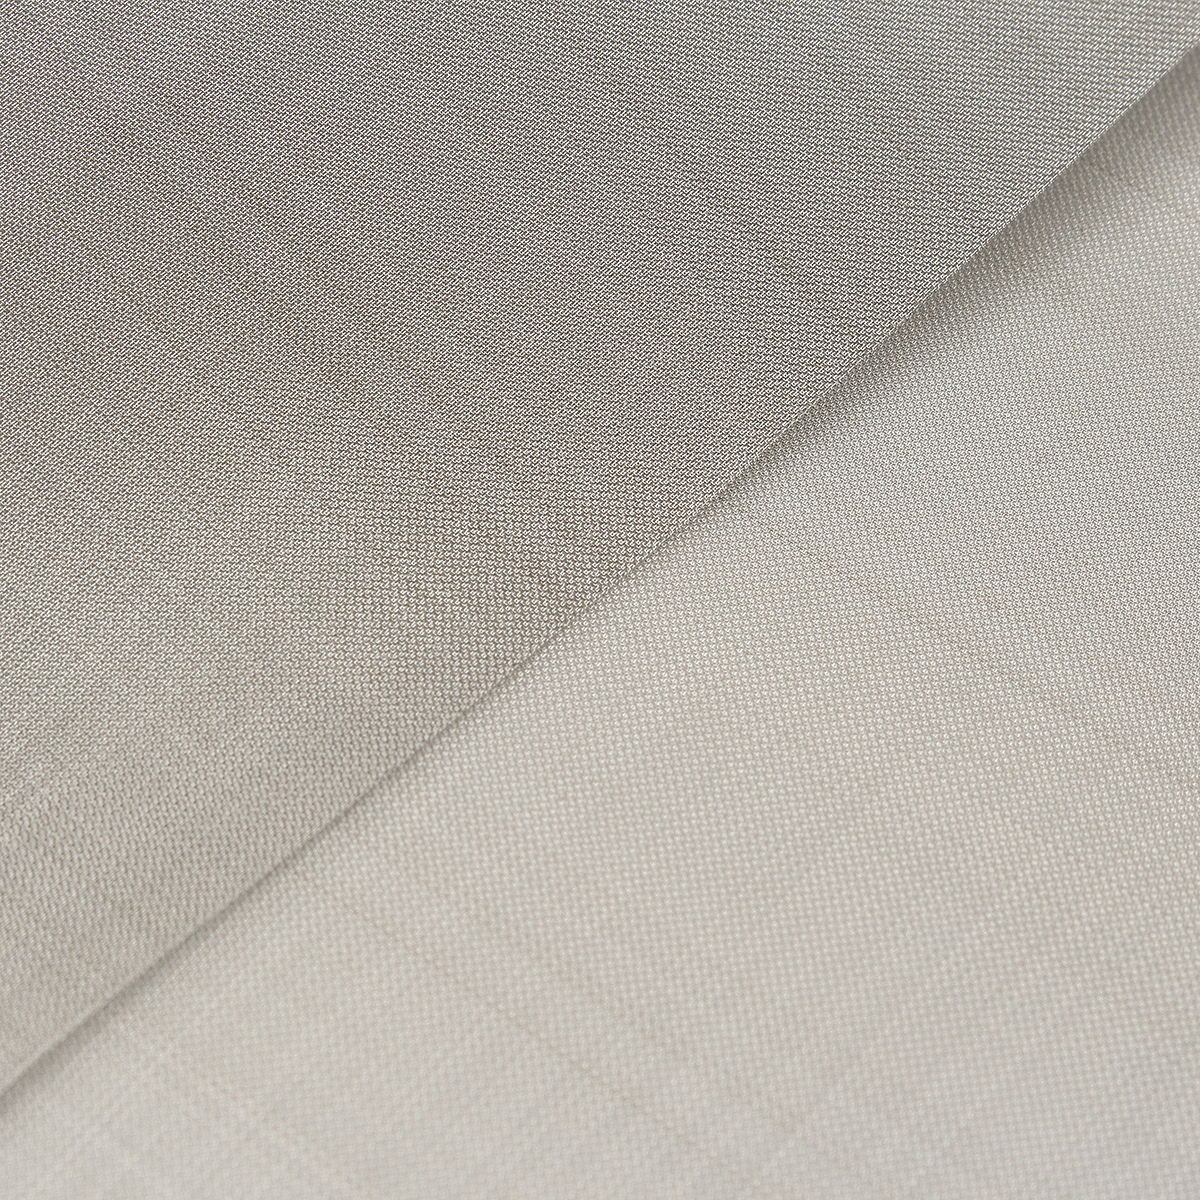 30x20cm Stainless Steel Woven Wire Filtration Grill Sheet Filter 200 Mesh